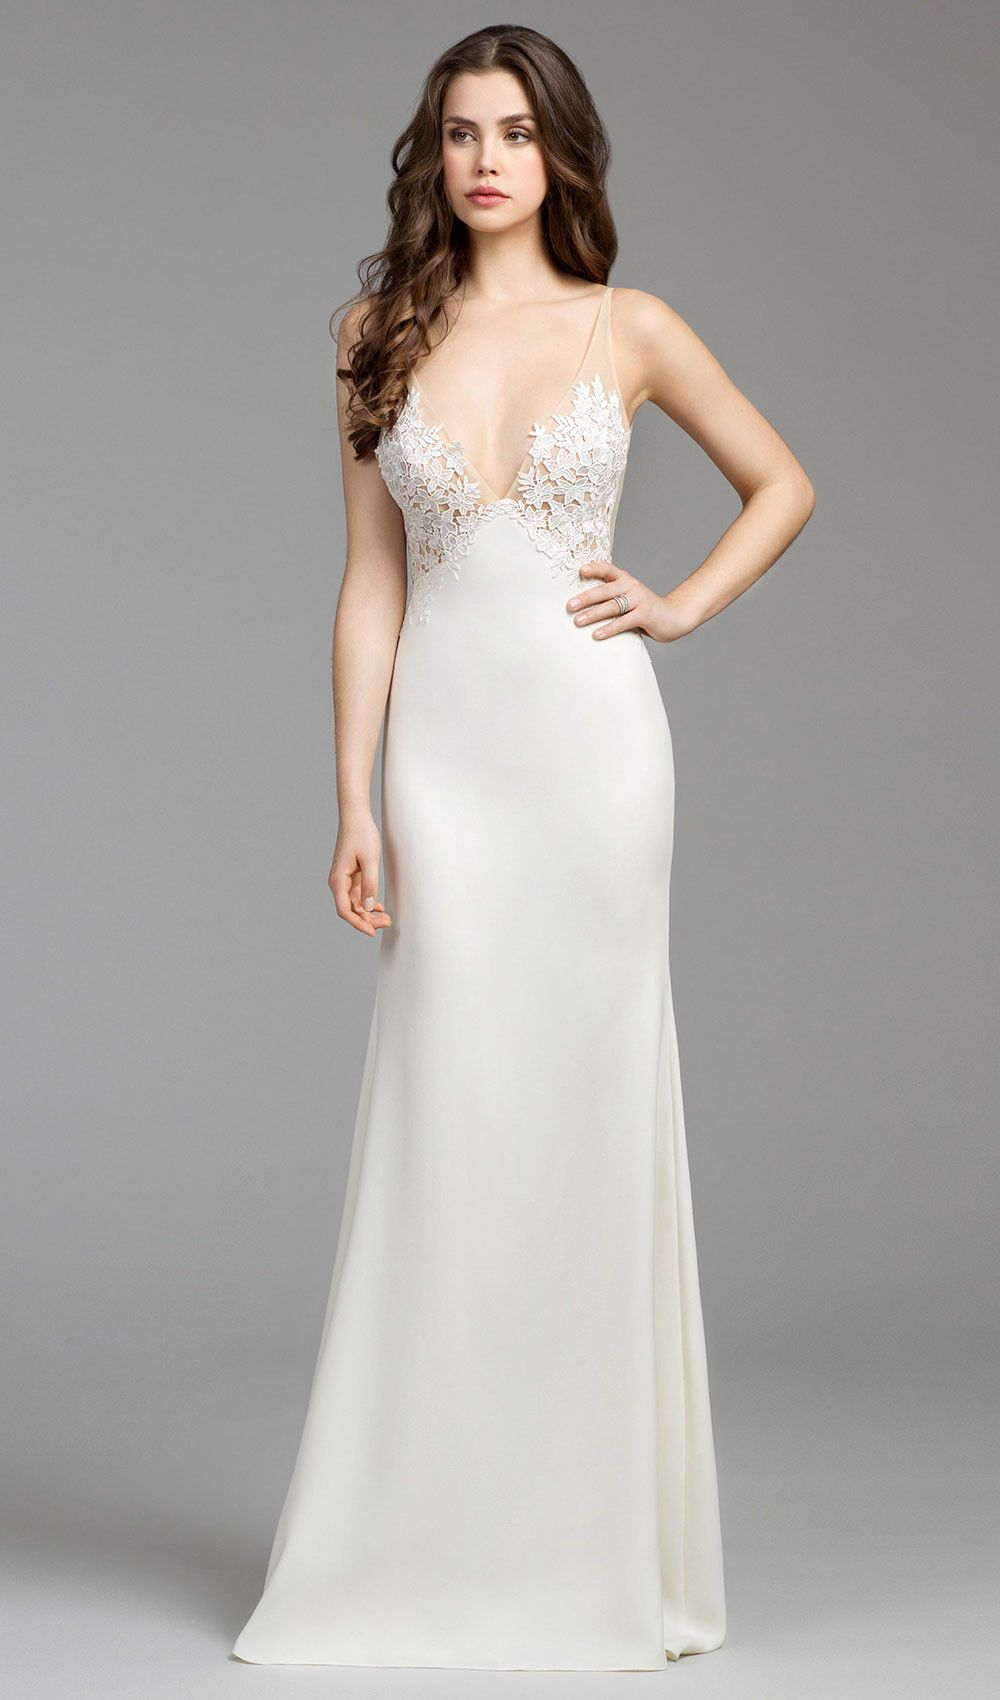 Try this ivory crepe sheath wedding dress, Venise lace bodice with ...